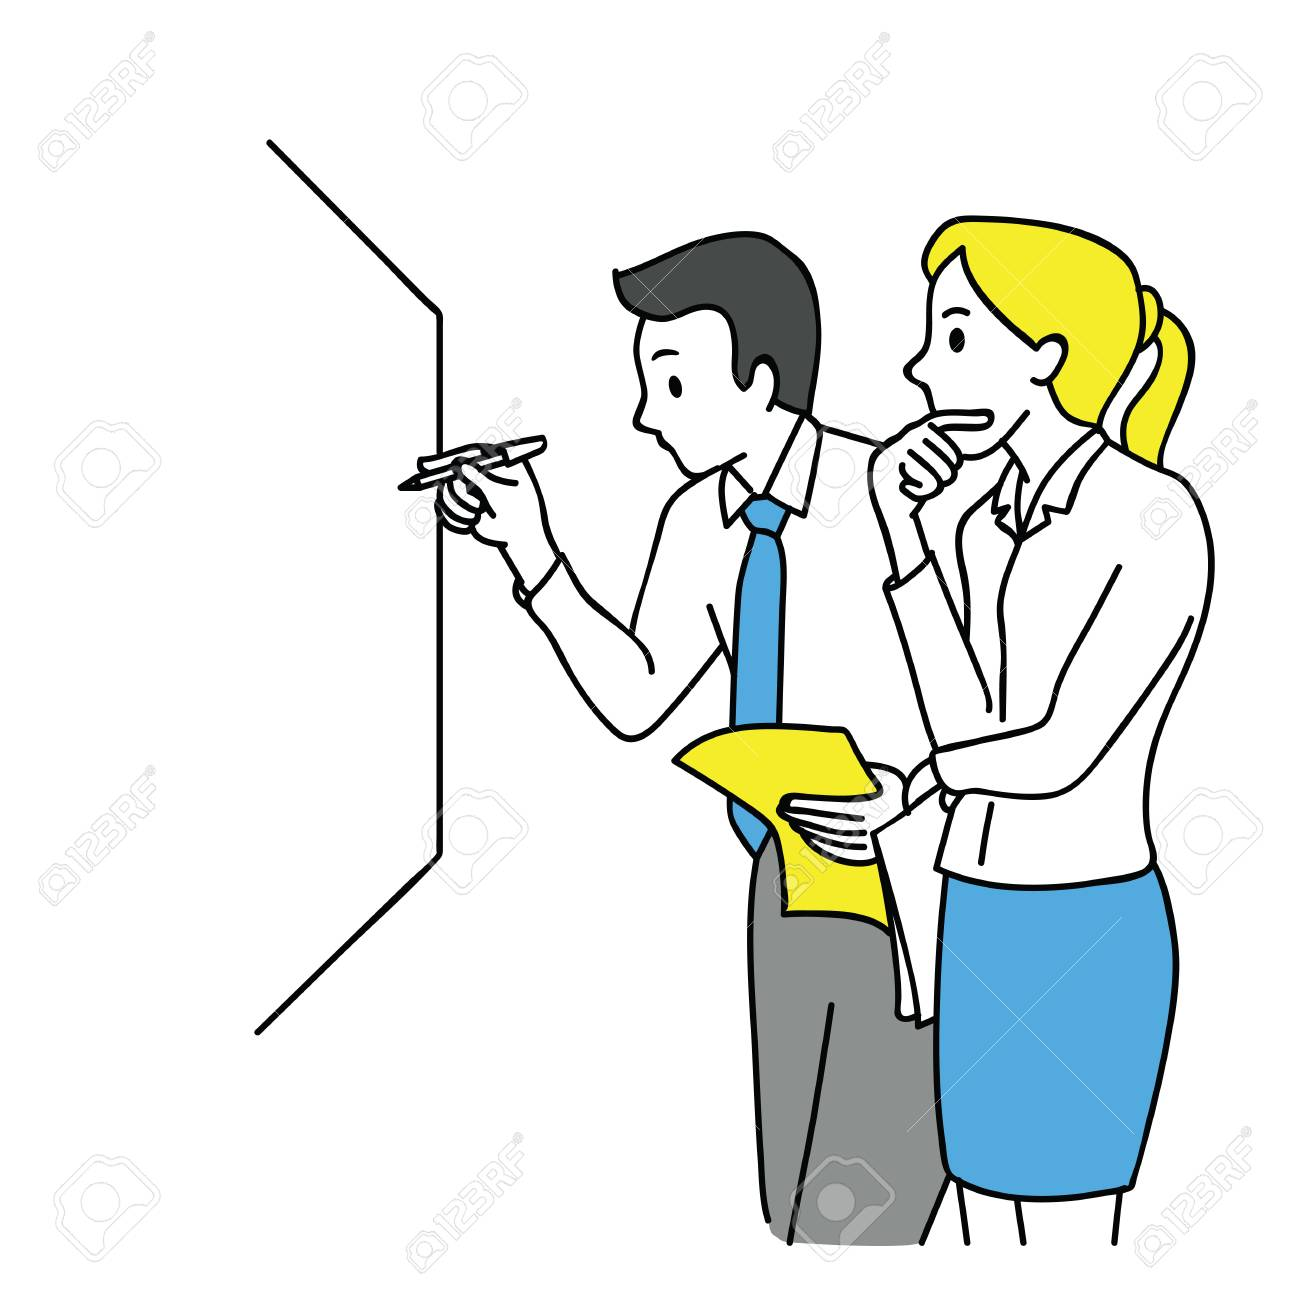 Businessman and woman, writing on white board, thinking and discussing, business concept in partnership, teamwork, coworkers, corporate. Outline, linear, thin line art, hand drawn sketch design. - 91019797